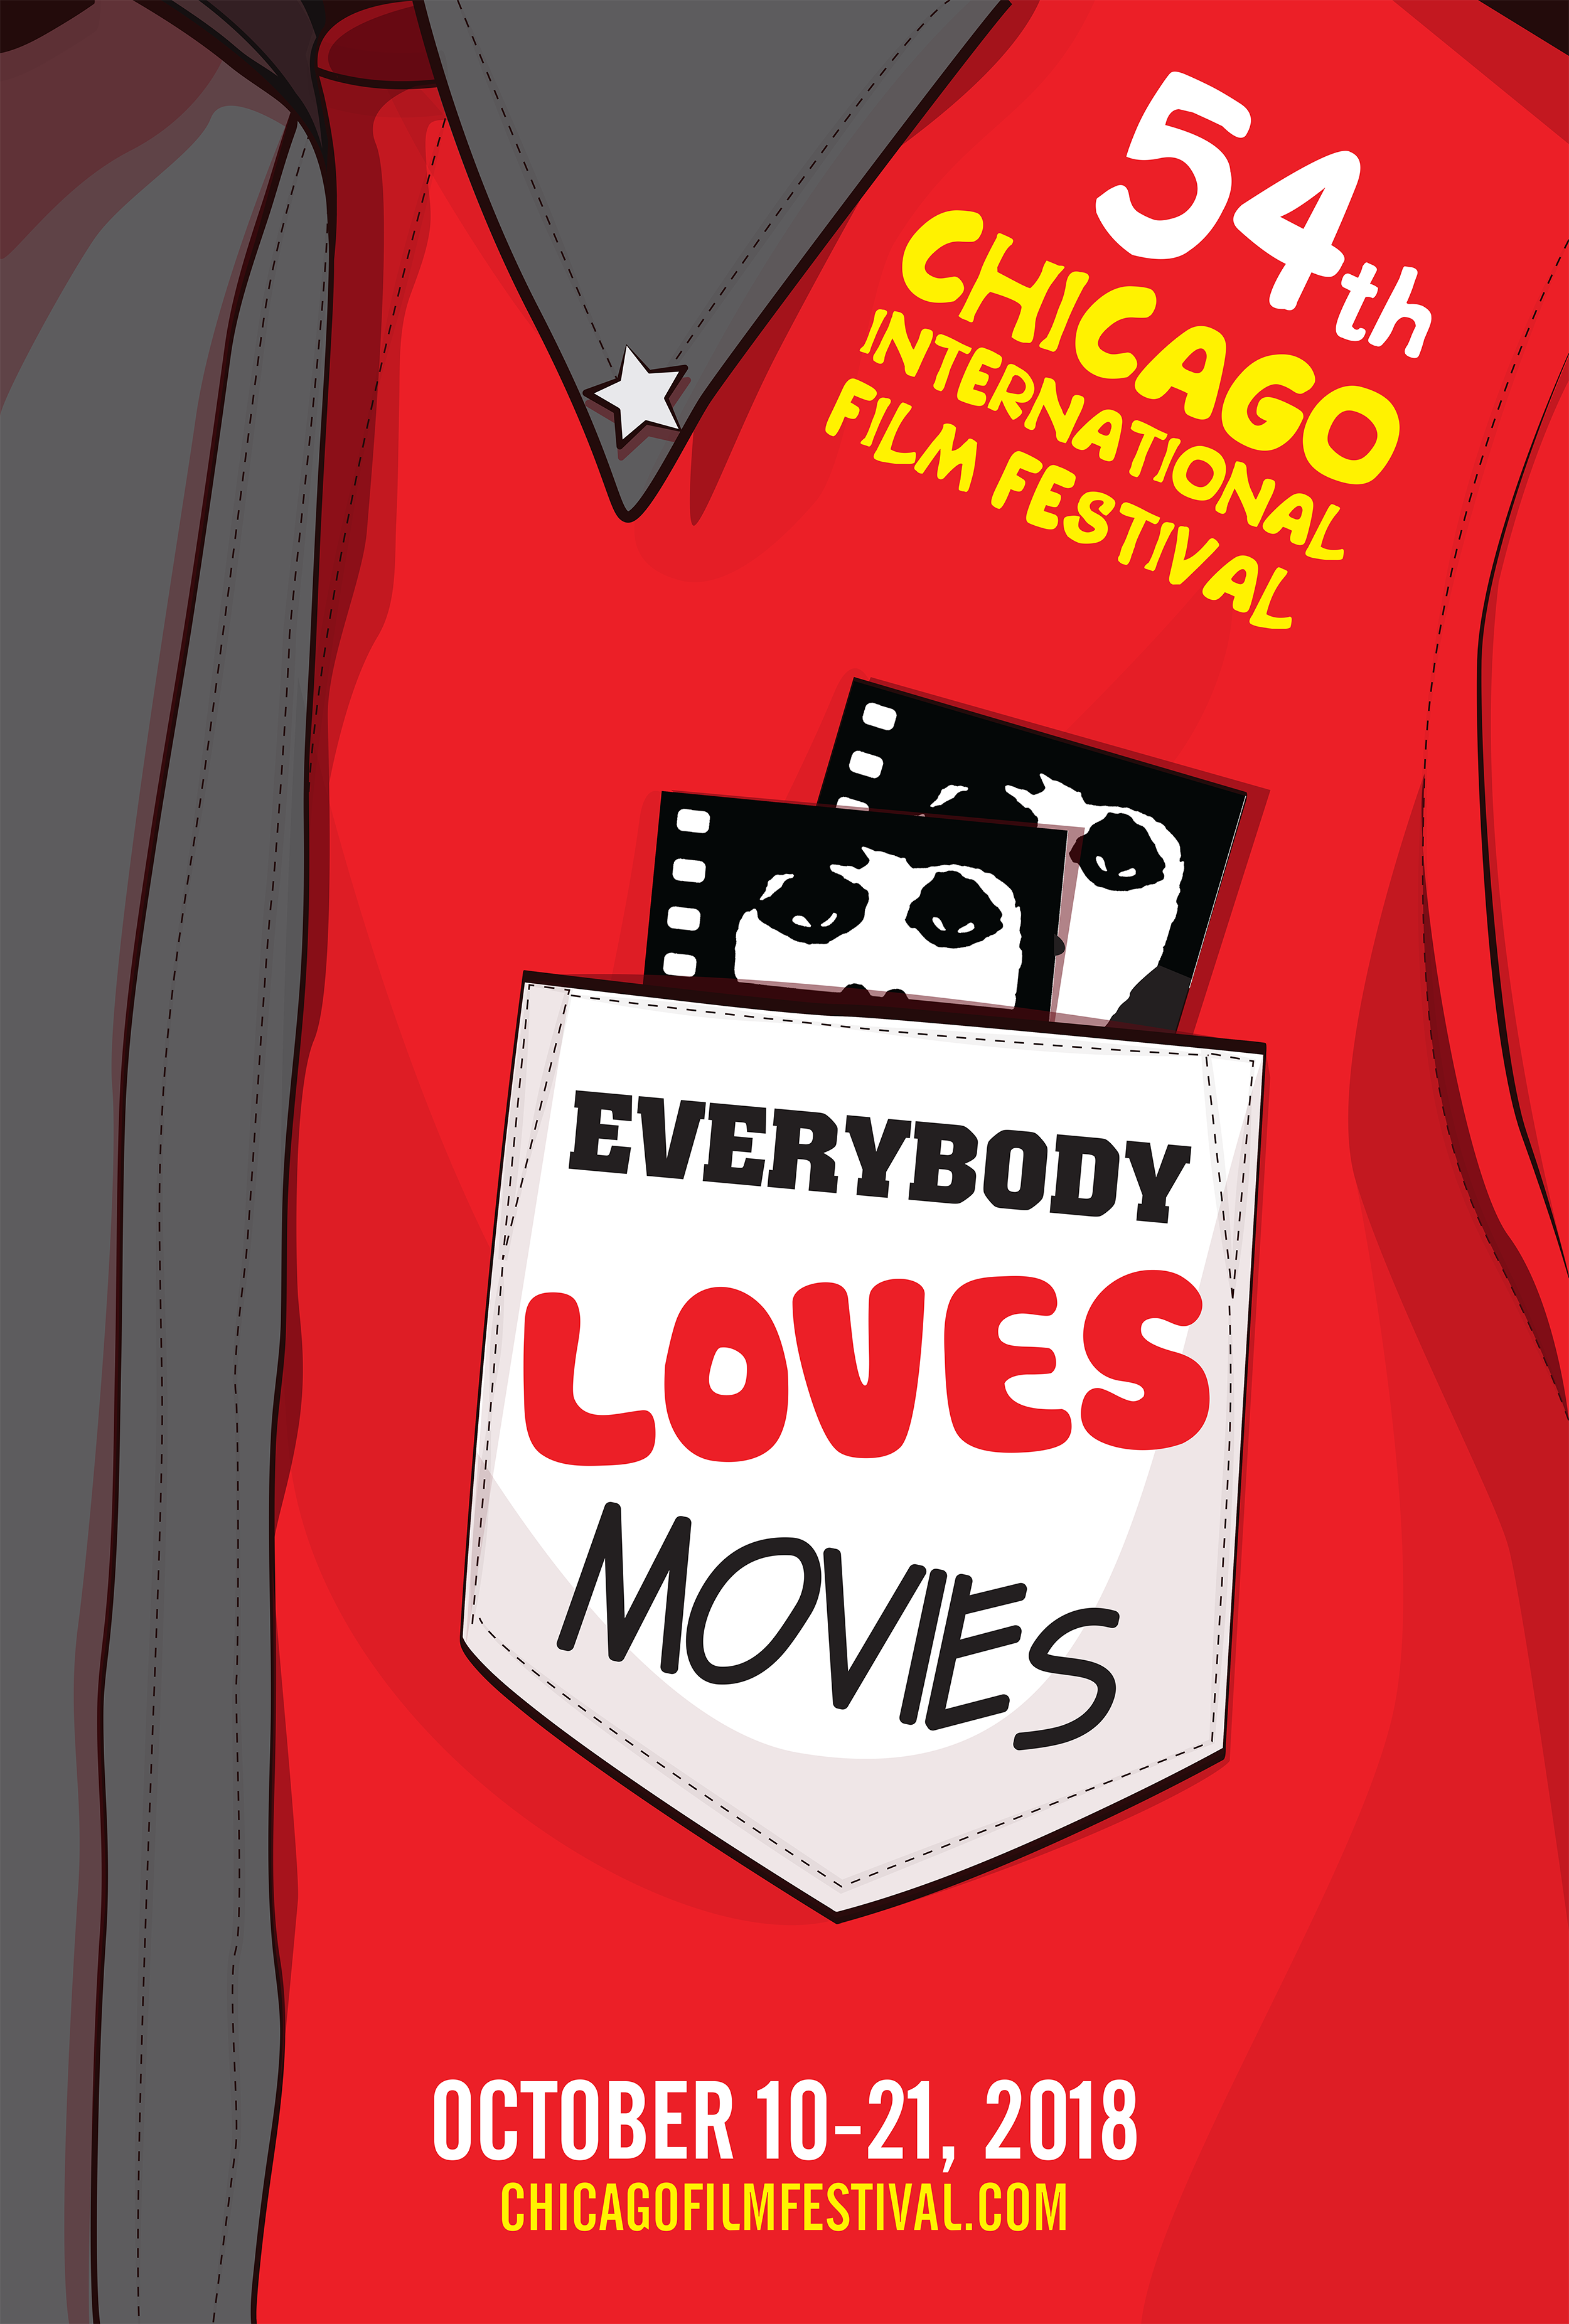 Everybody Loves Movies - Poster size: 27 x 40 (inch)This poster is my submission for the 54th Chicago International Film Festival Poster Design Competition which themes is